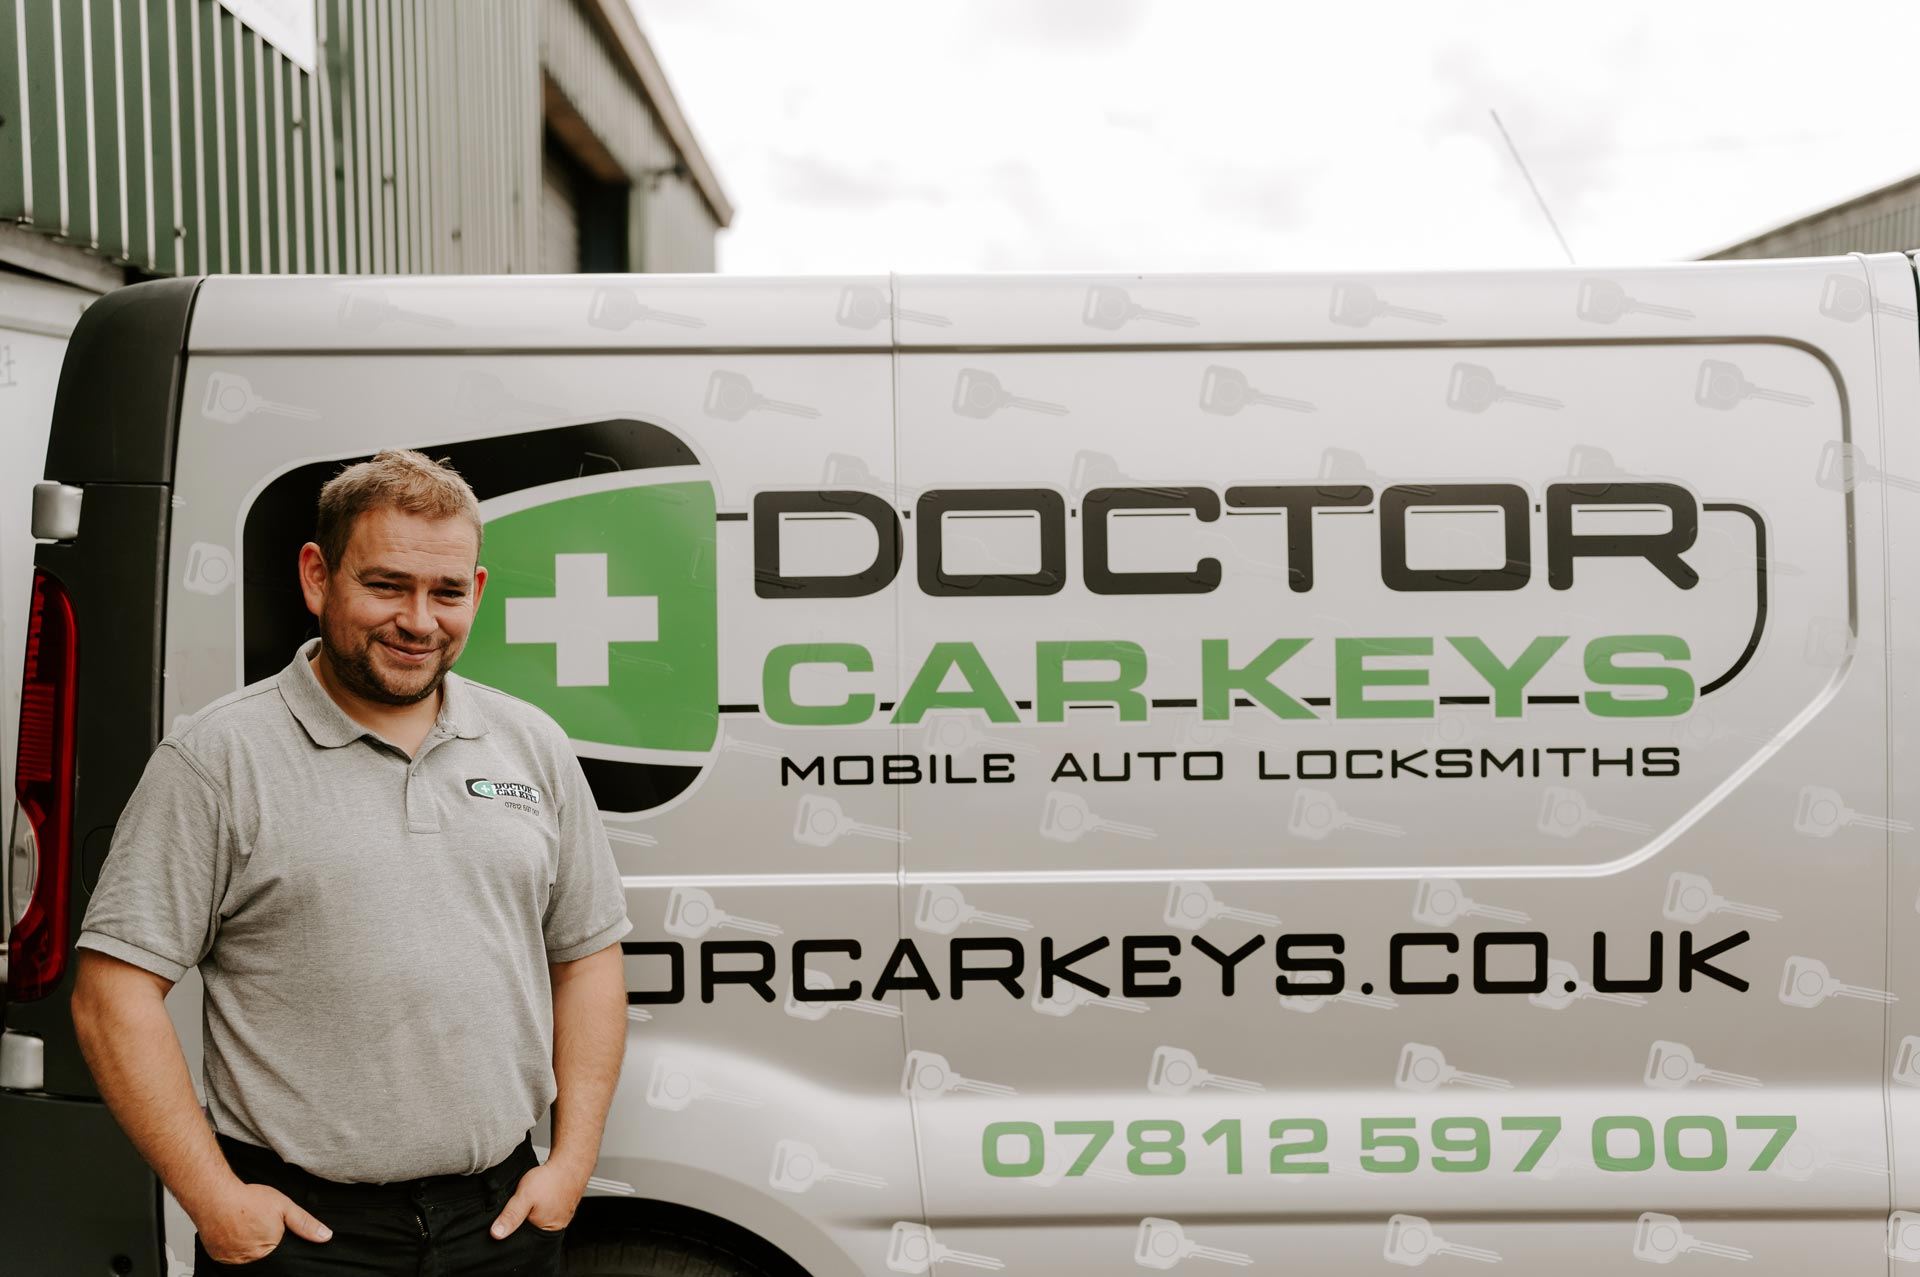 Auto Locksmiths in Farnborough